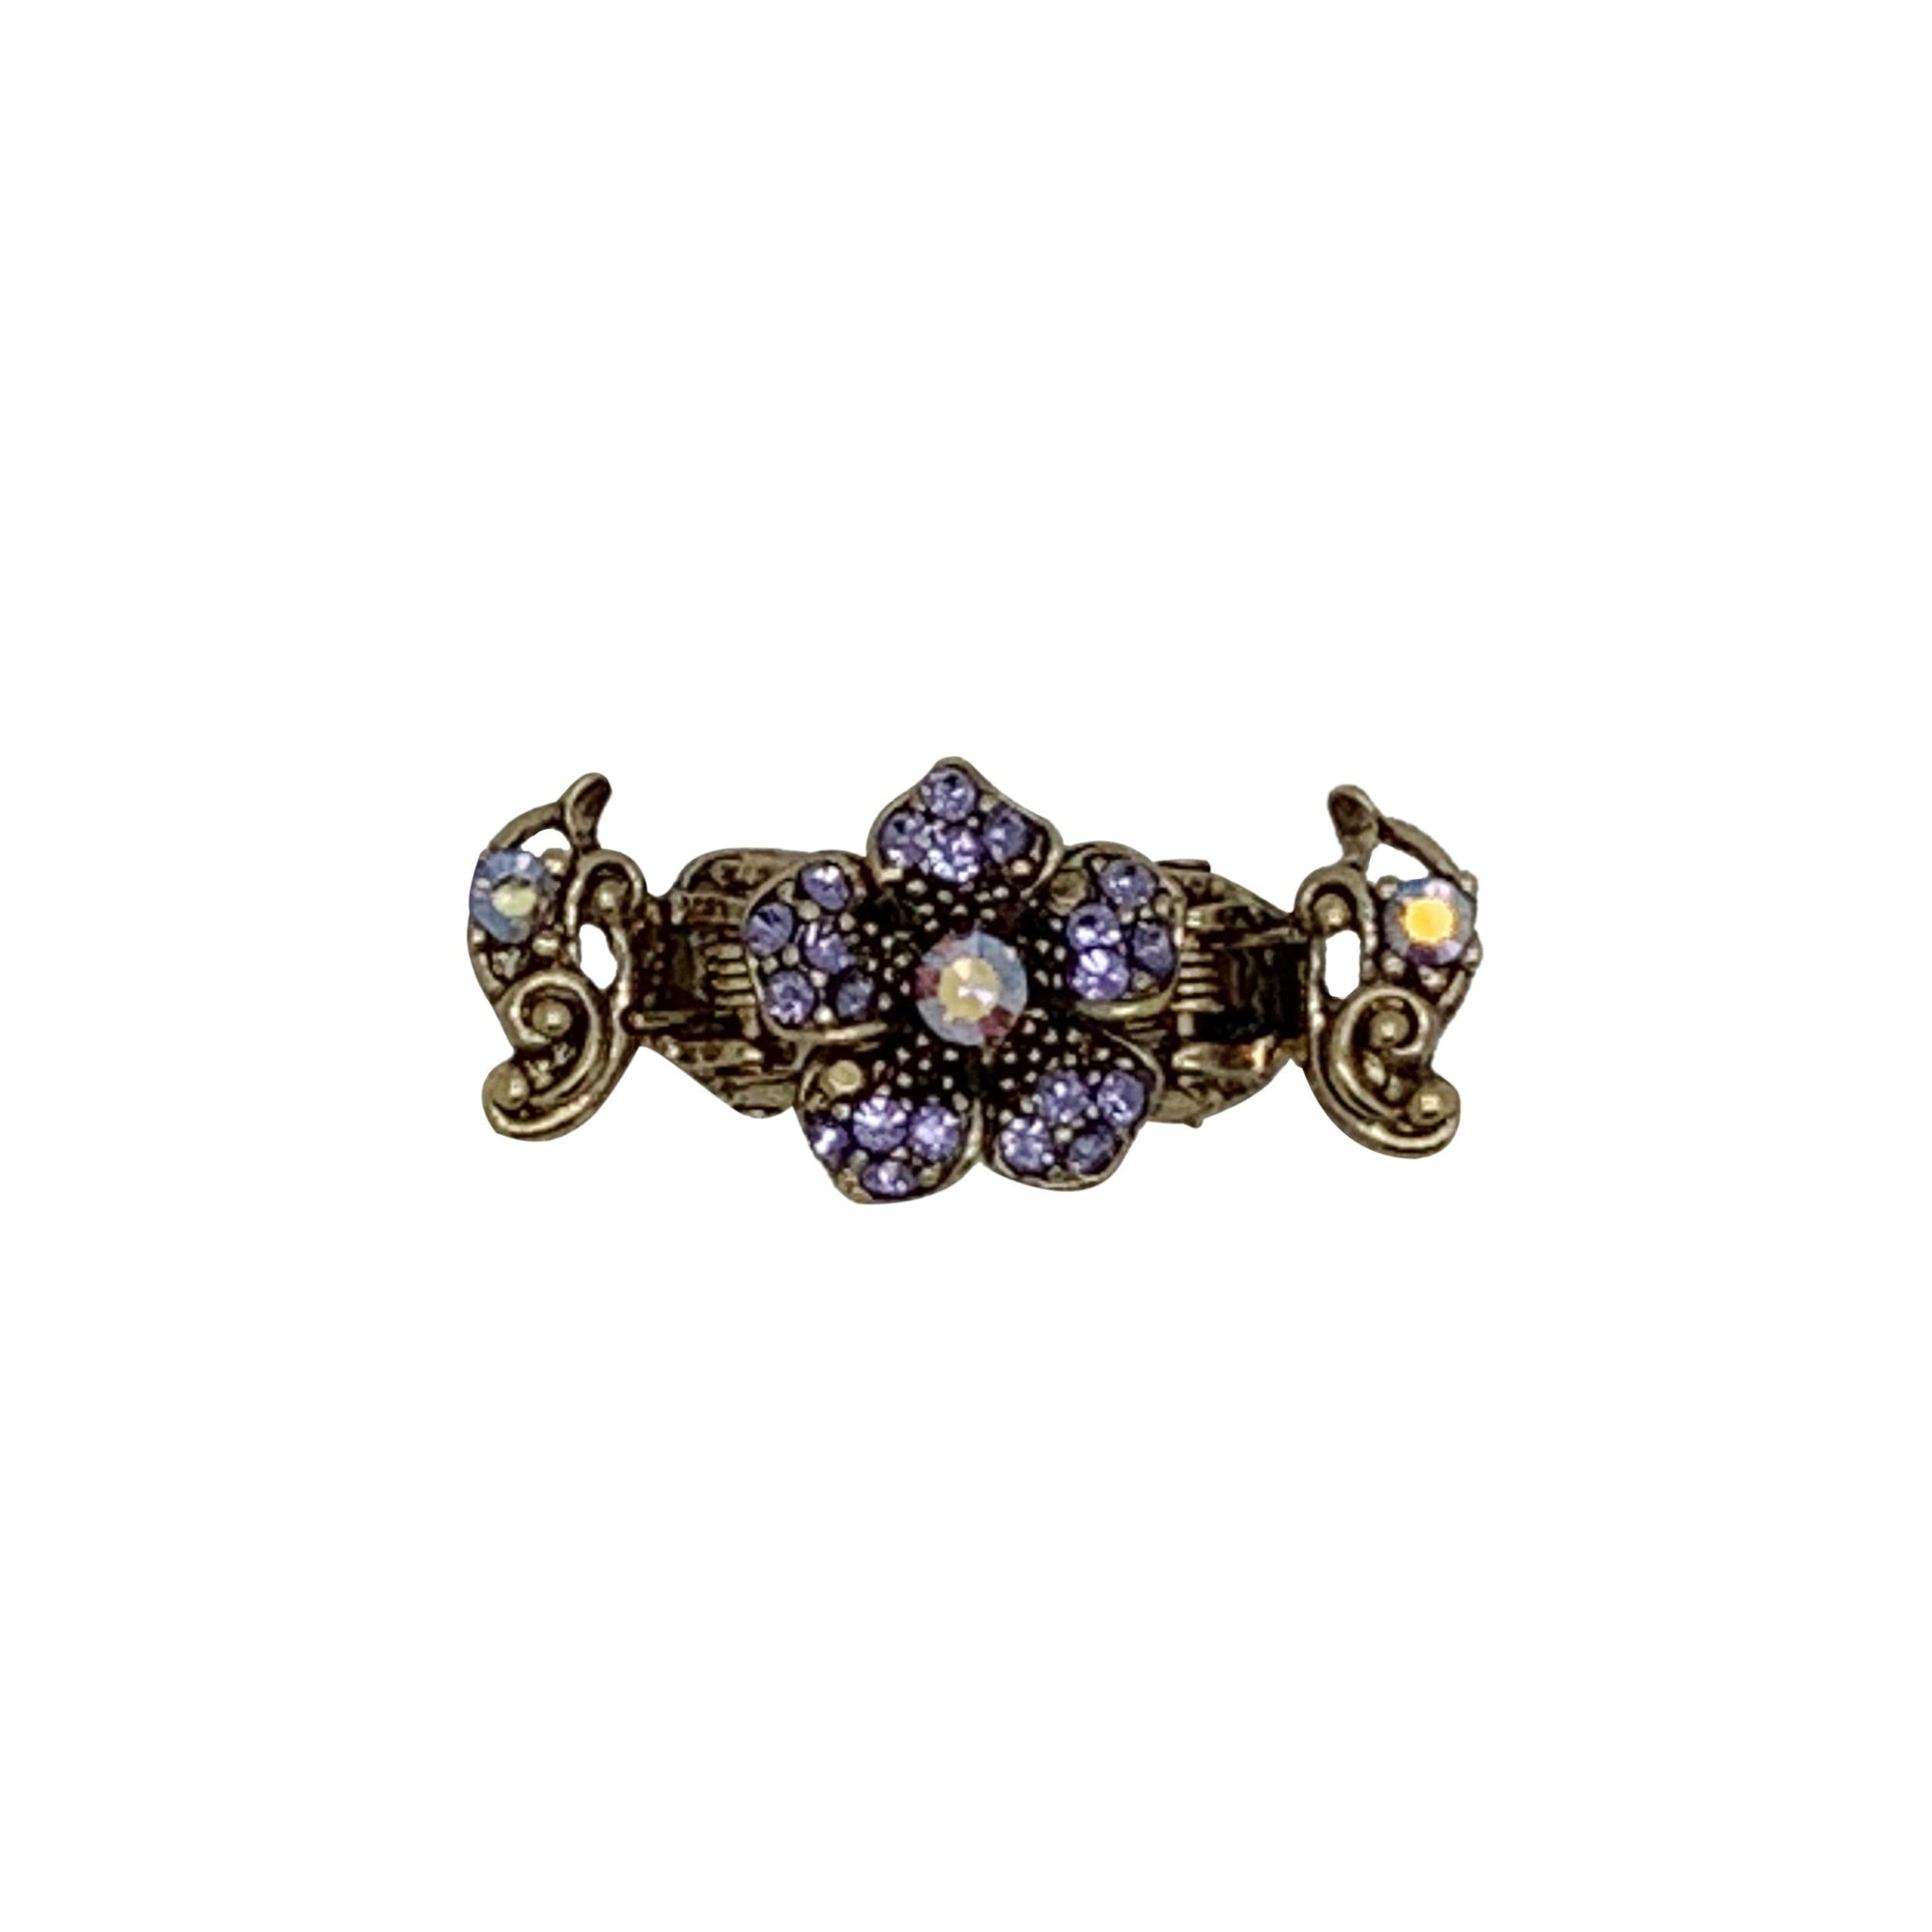 Mini Swarovski Crystal Flower Hair Claw-Hair claws-Swarovski Crystal-Violet Crystal-Gold-Tegen Accessories